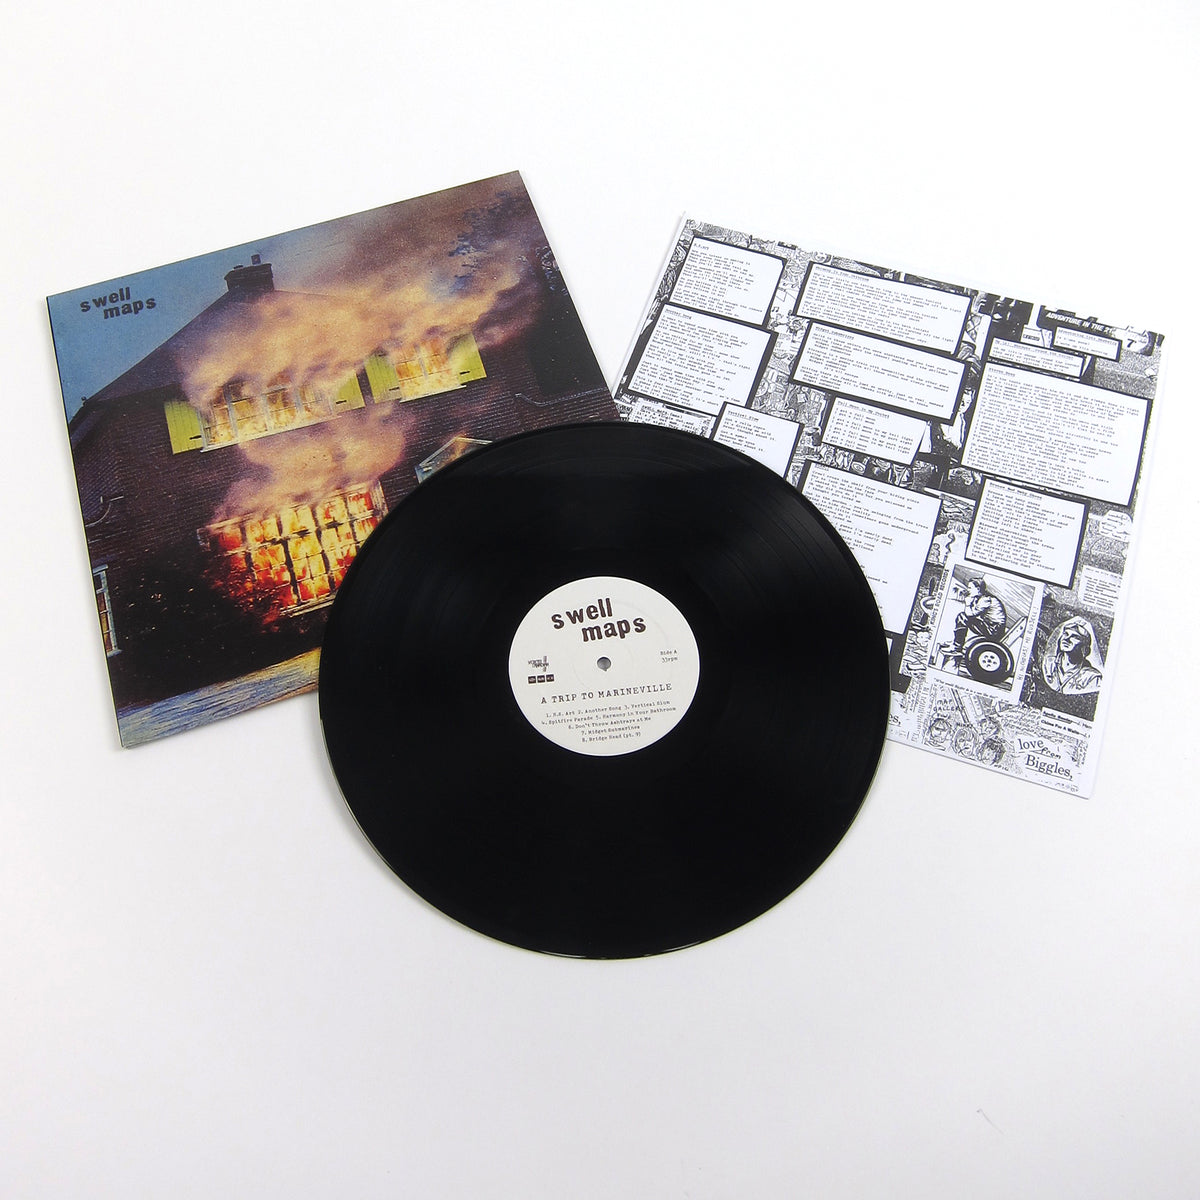 Swell Maps: A Trip To Marineville Vinyl LP+7""